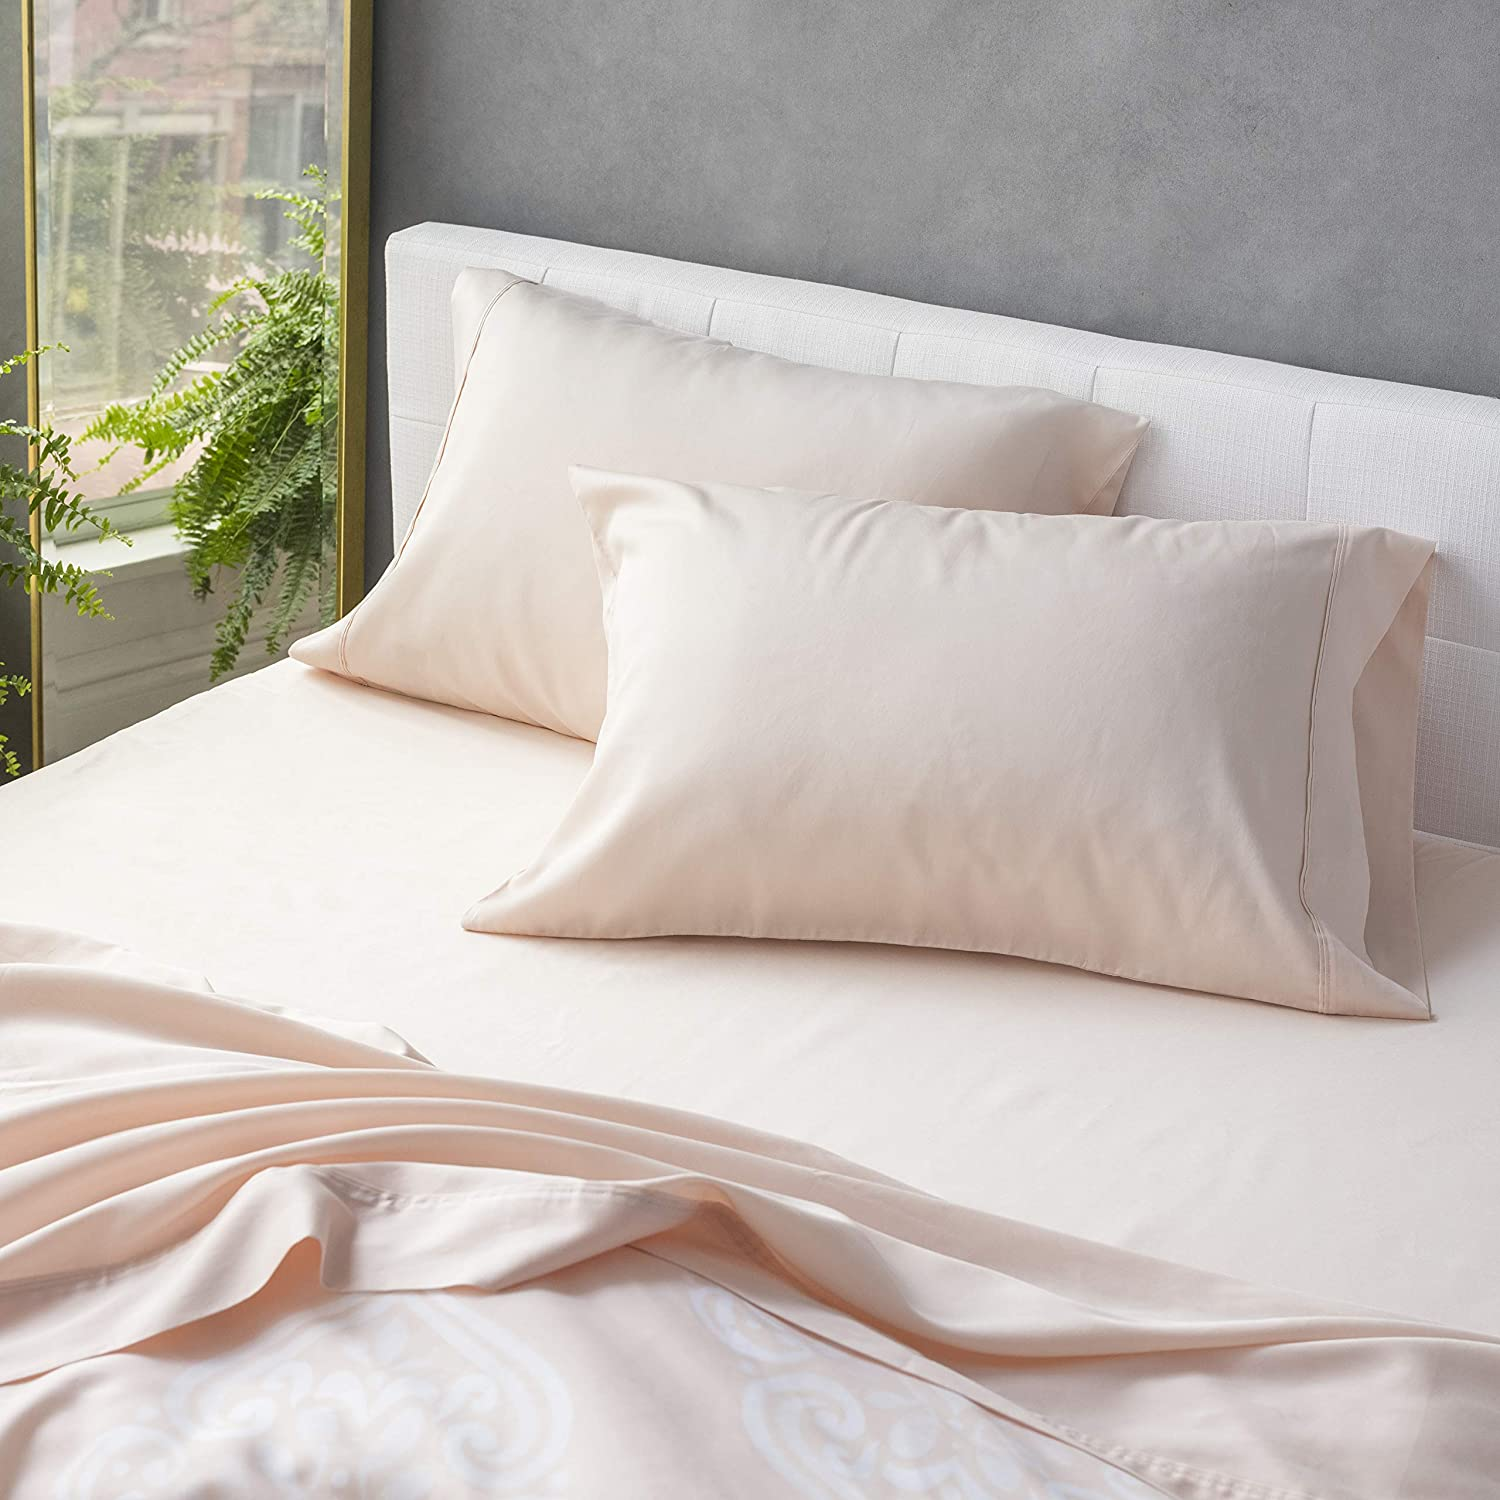 Welhome 300 Thread Count Raleigh Mall Twin Tencel Lyocell Sateen Size Cotton Fees free